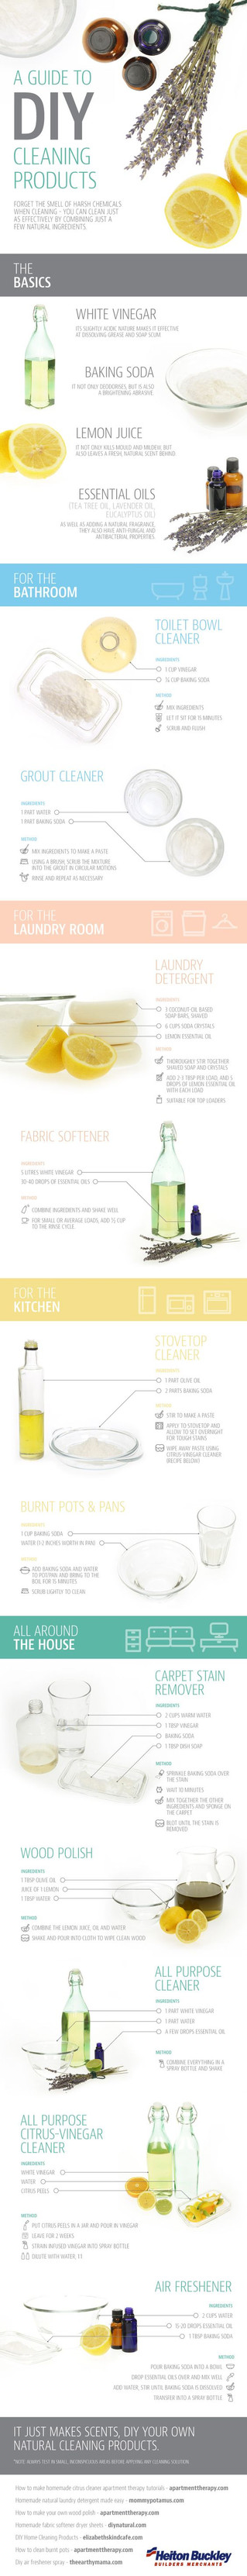 The Best House Cleaning Guide!